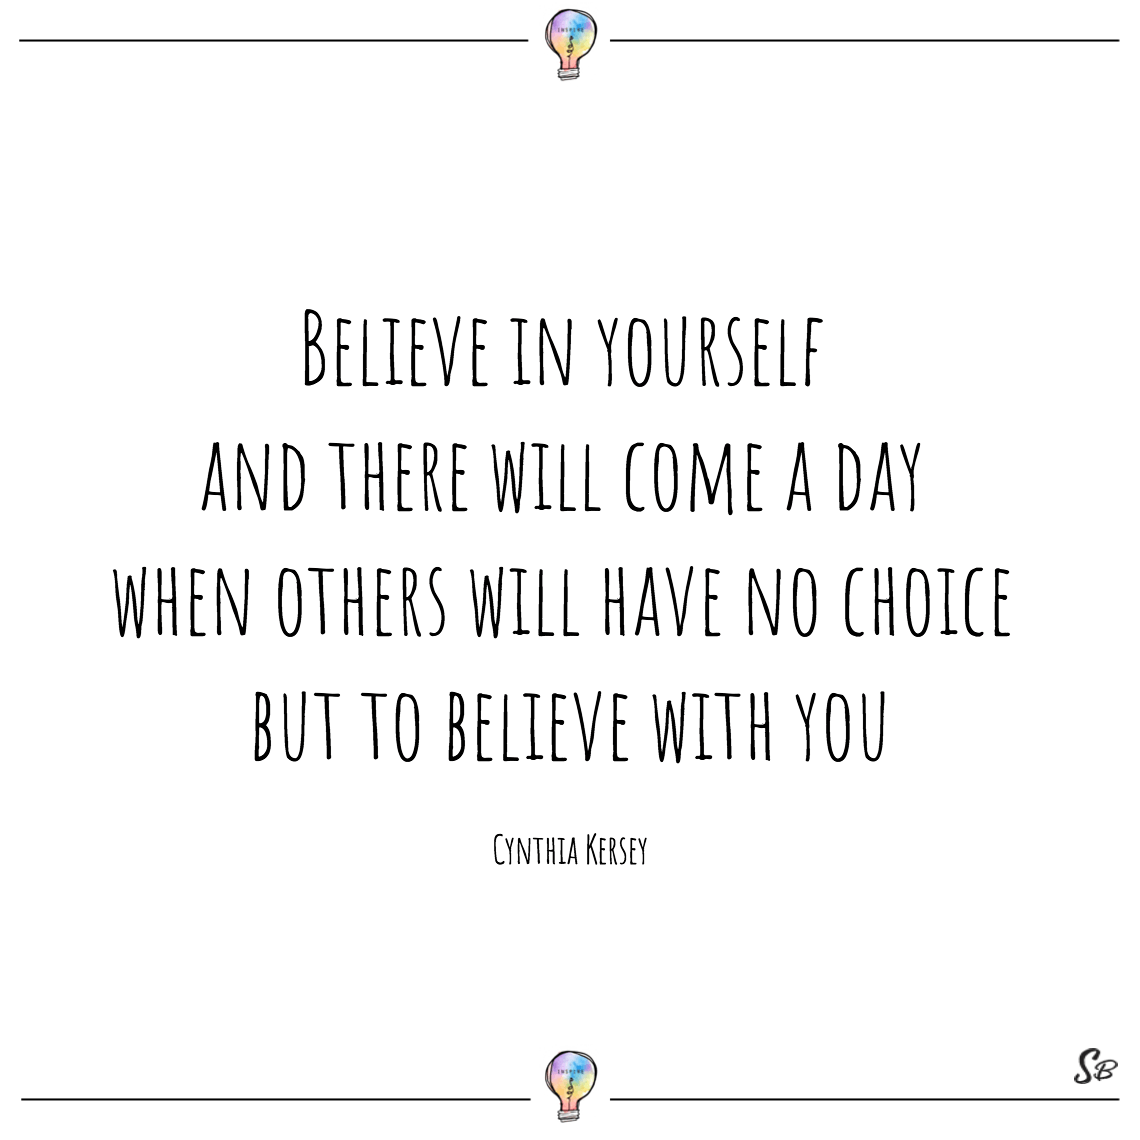 Believe in yourself and there will come a day when others will have no choice but to believe with you cynthia kersey